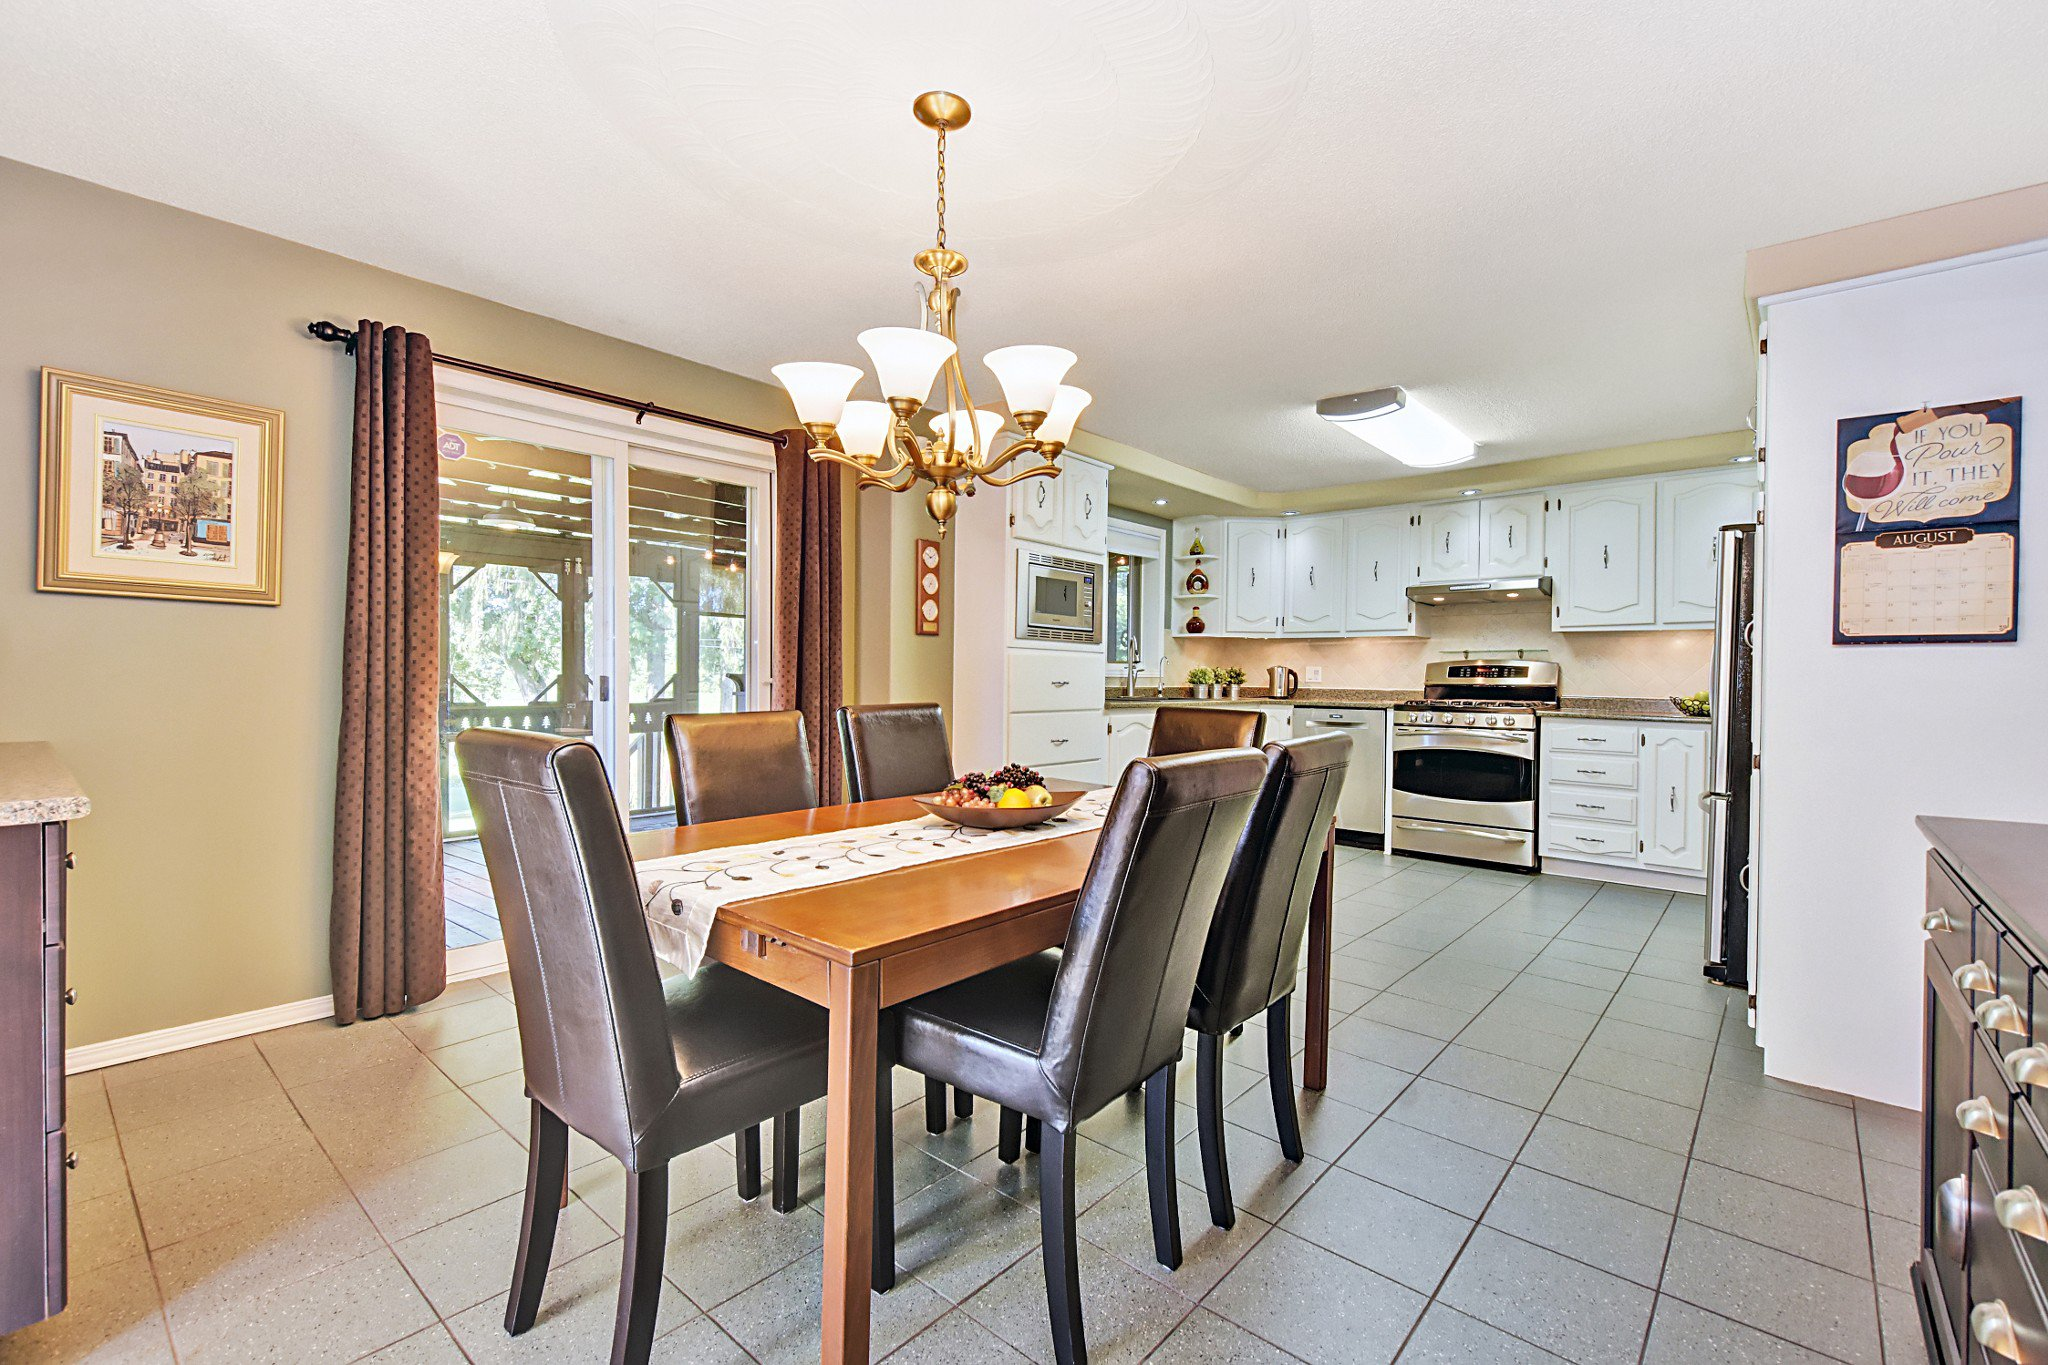 Photo 9: Photos: 5000 Dunning Road in Ottawa: Bearbrook House for sale